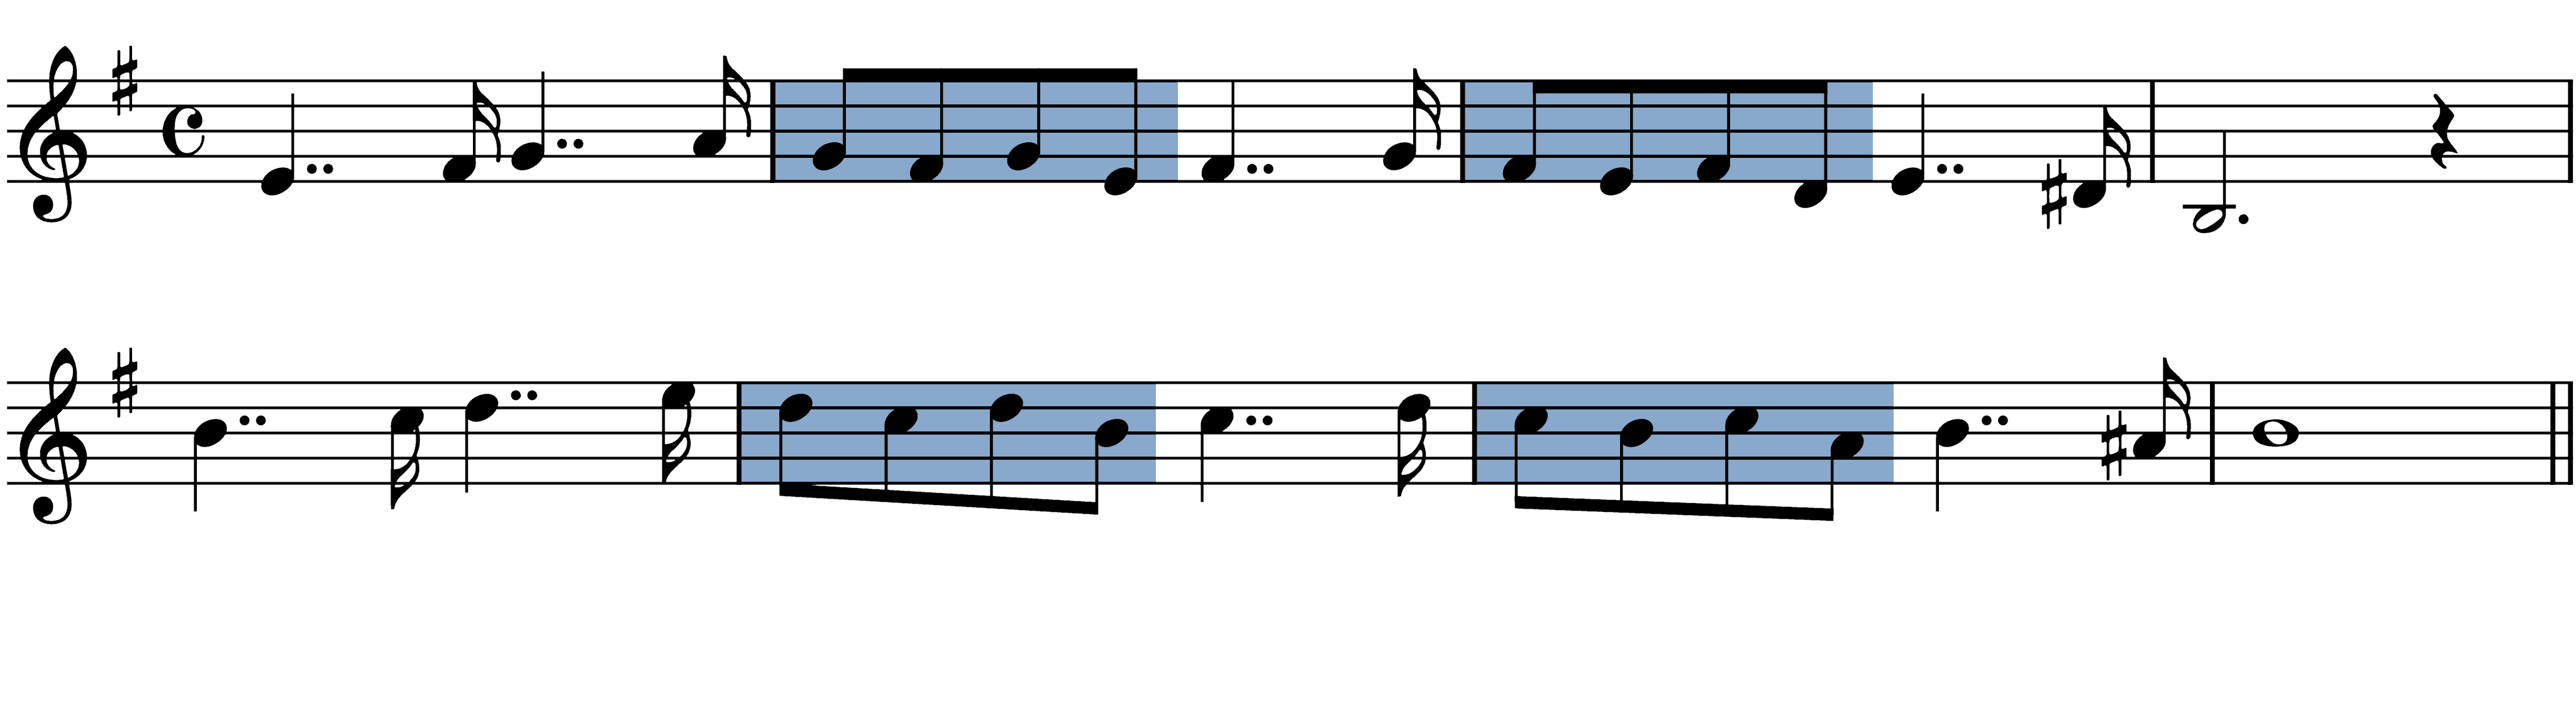 faure-pavane melodic figures